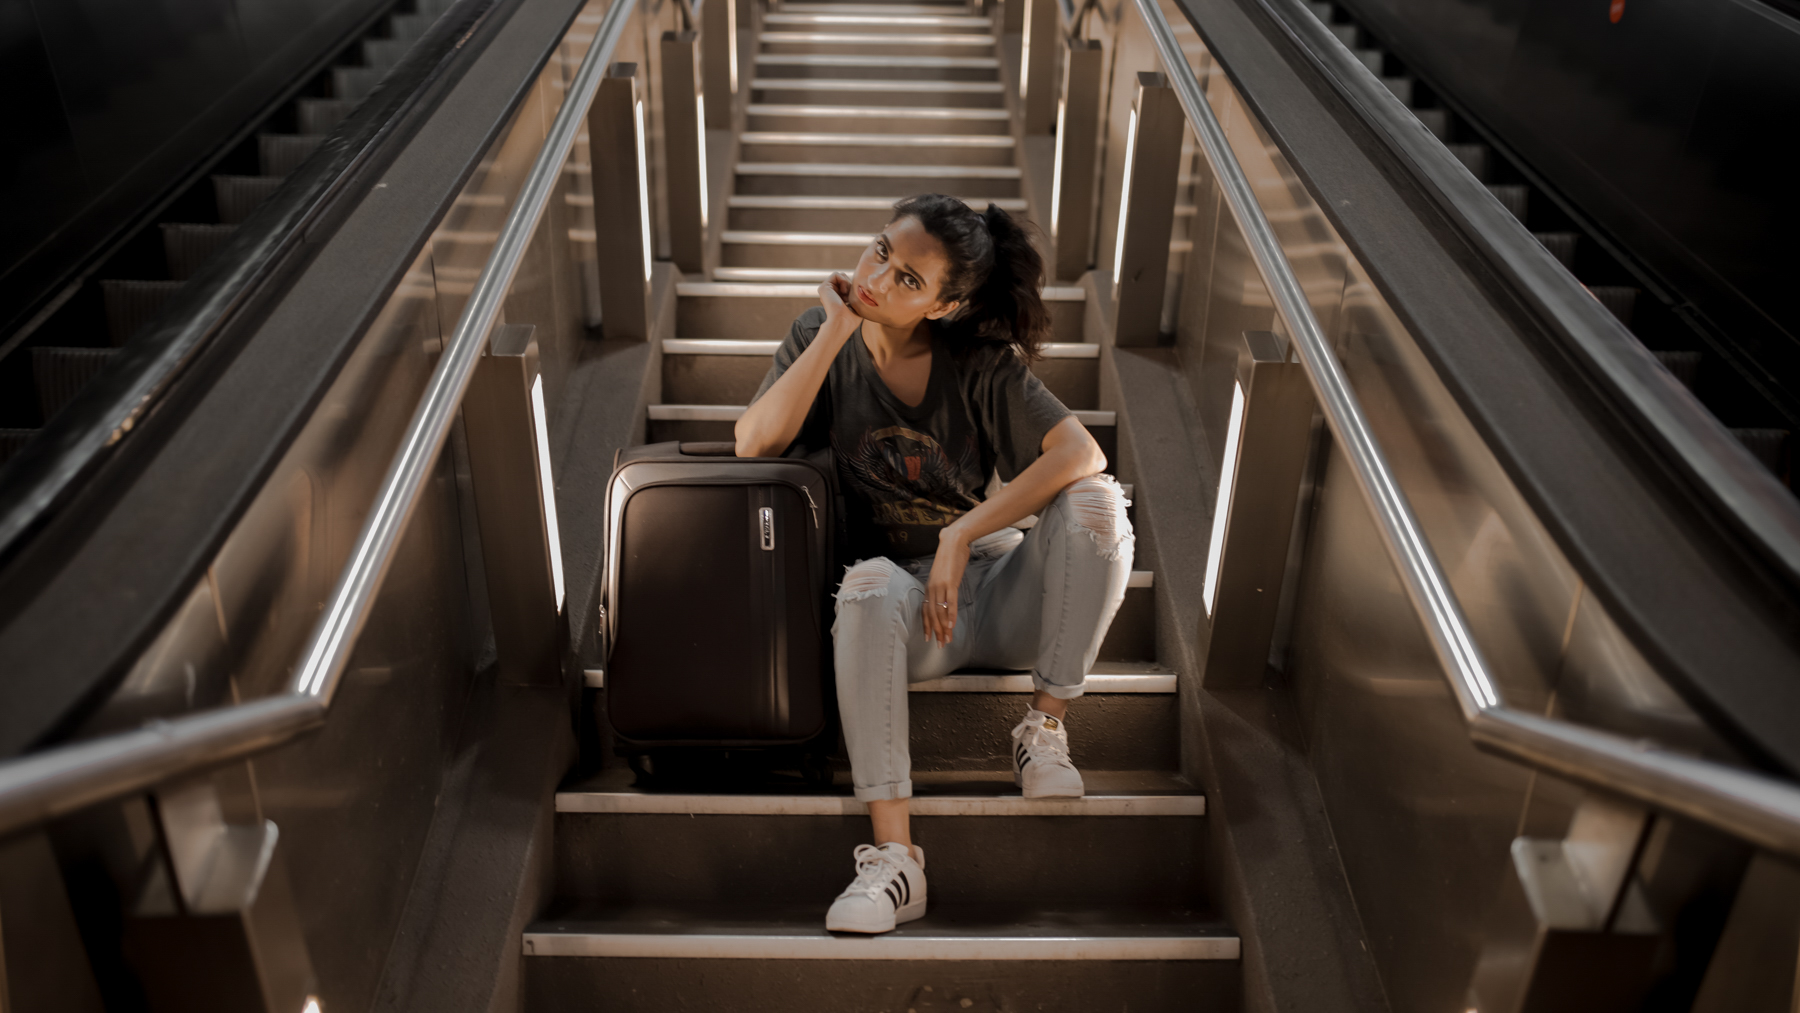 Traveling girl with carry-on luggage sitting on steps wearing jeans and grey tee-shirt and white sneakers